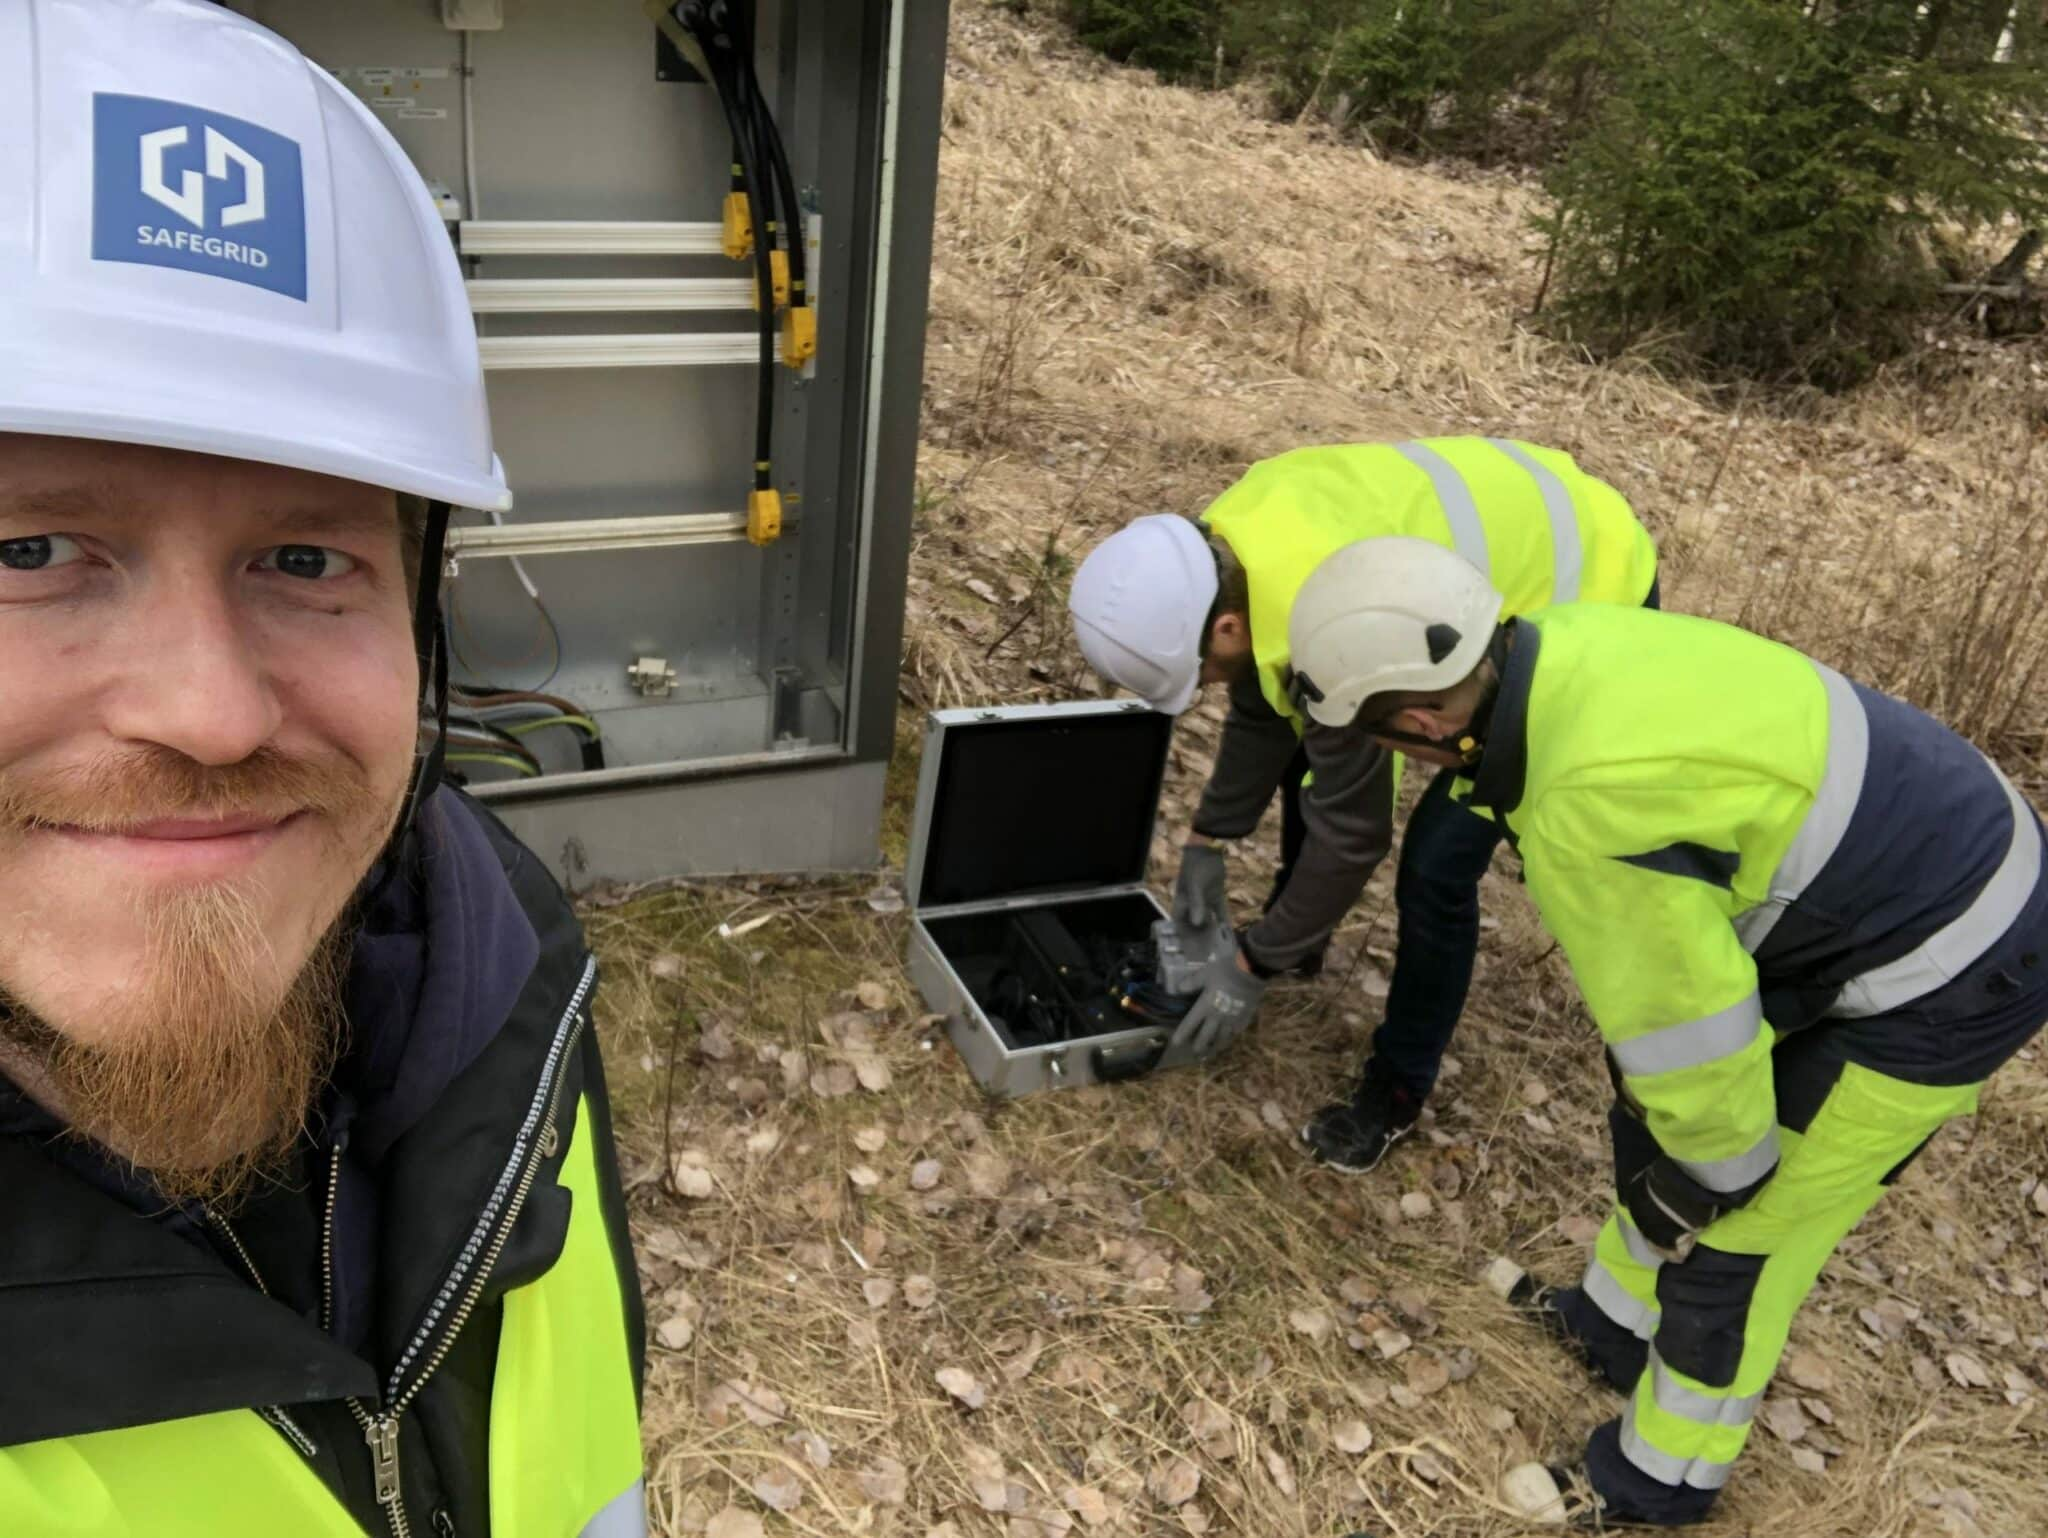 Sallilan Sähkönsiirto Monitors their Grid with SafeGrid Solutions